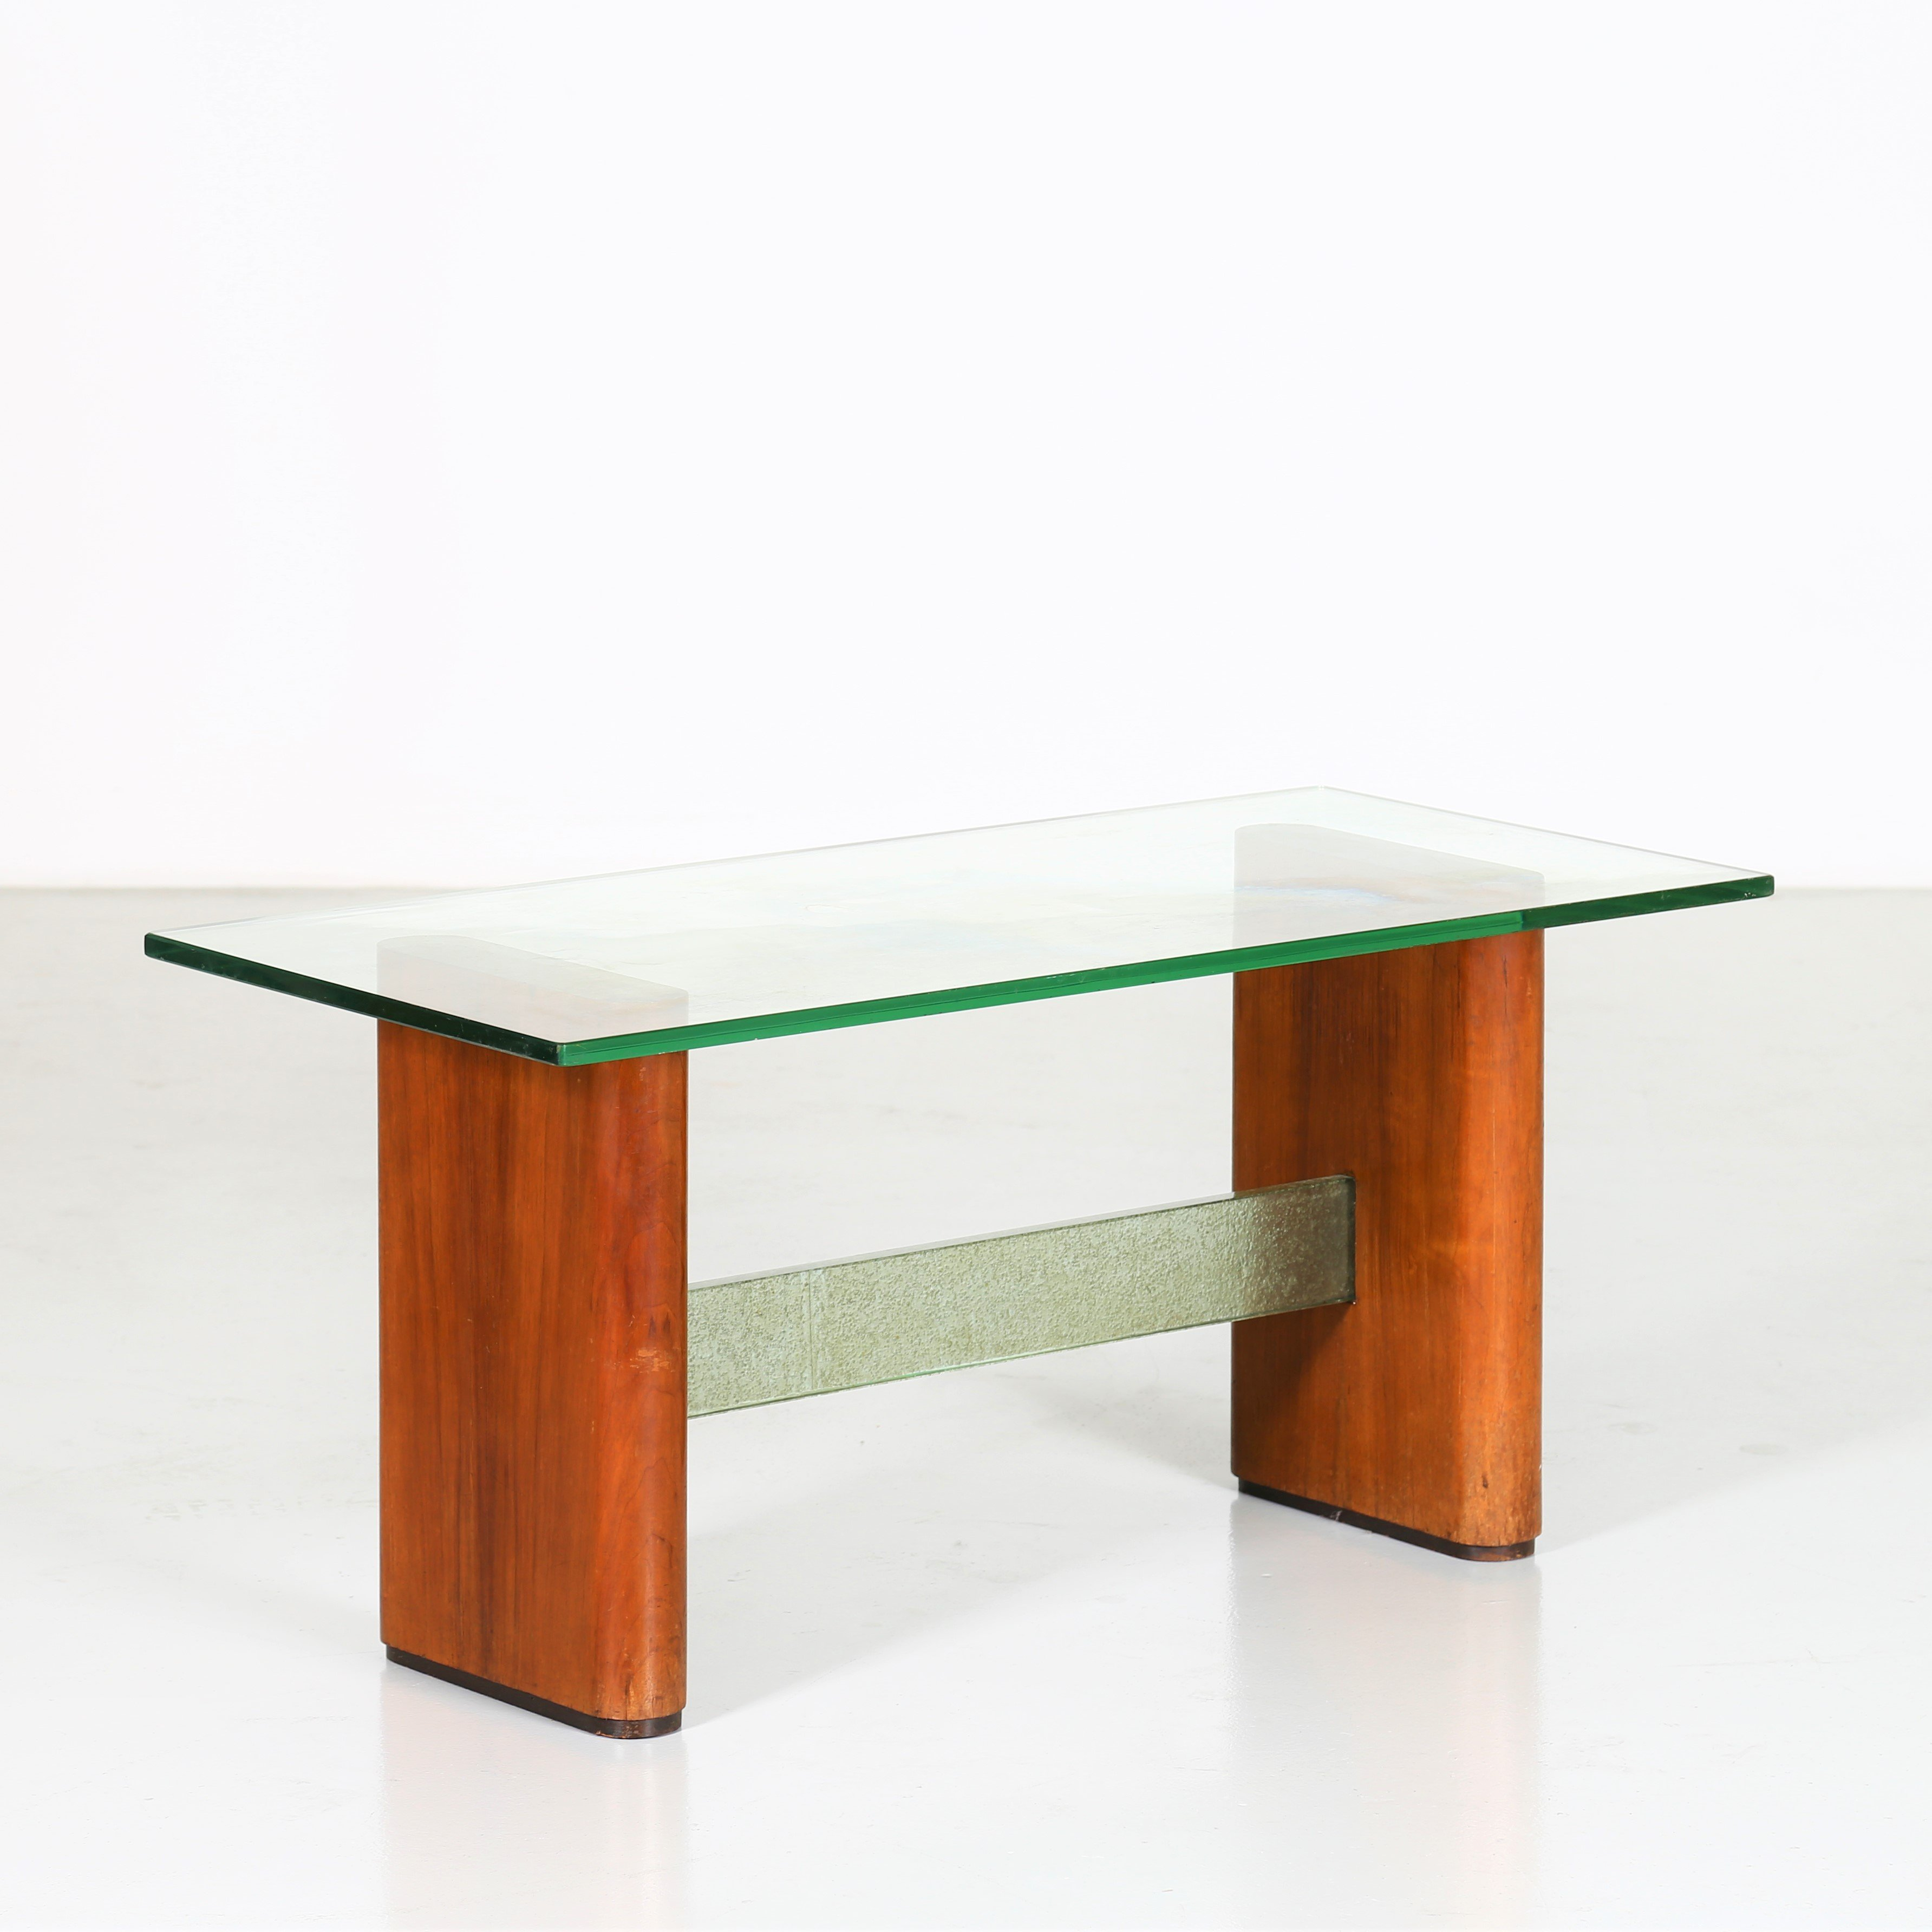 Italian Midcentury Coffee Table In